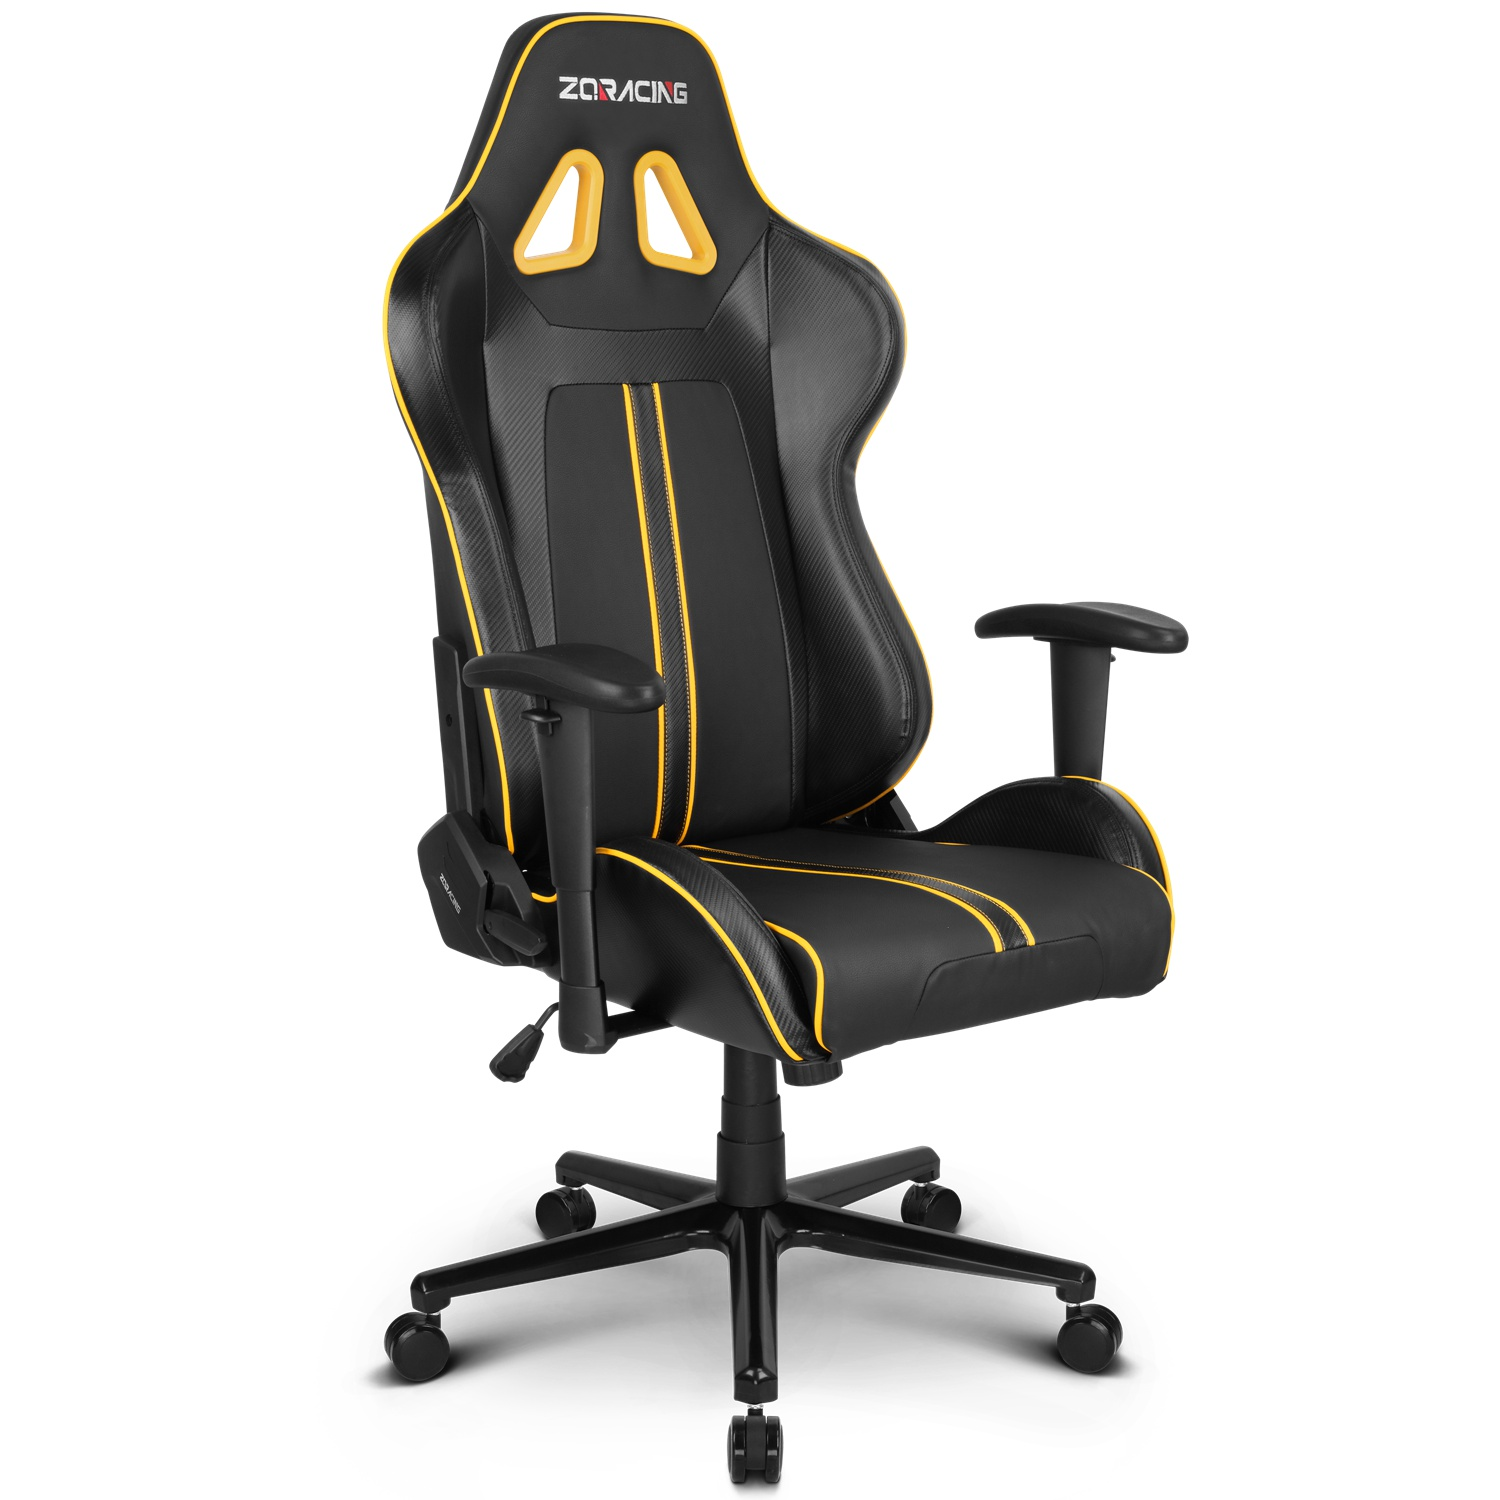 Zqracing League Series Gaming Office Chair Yellow Black